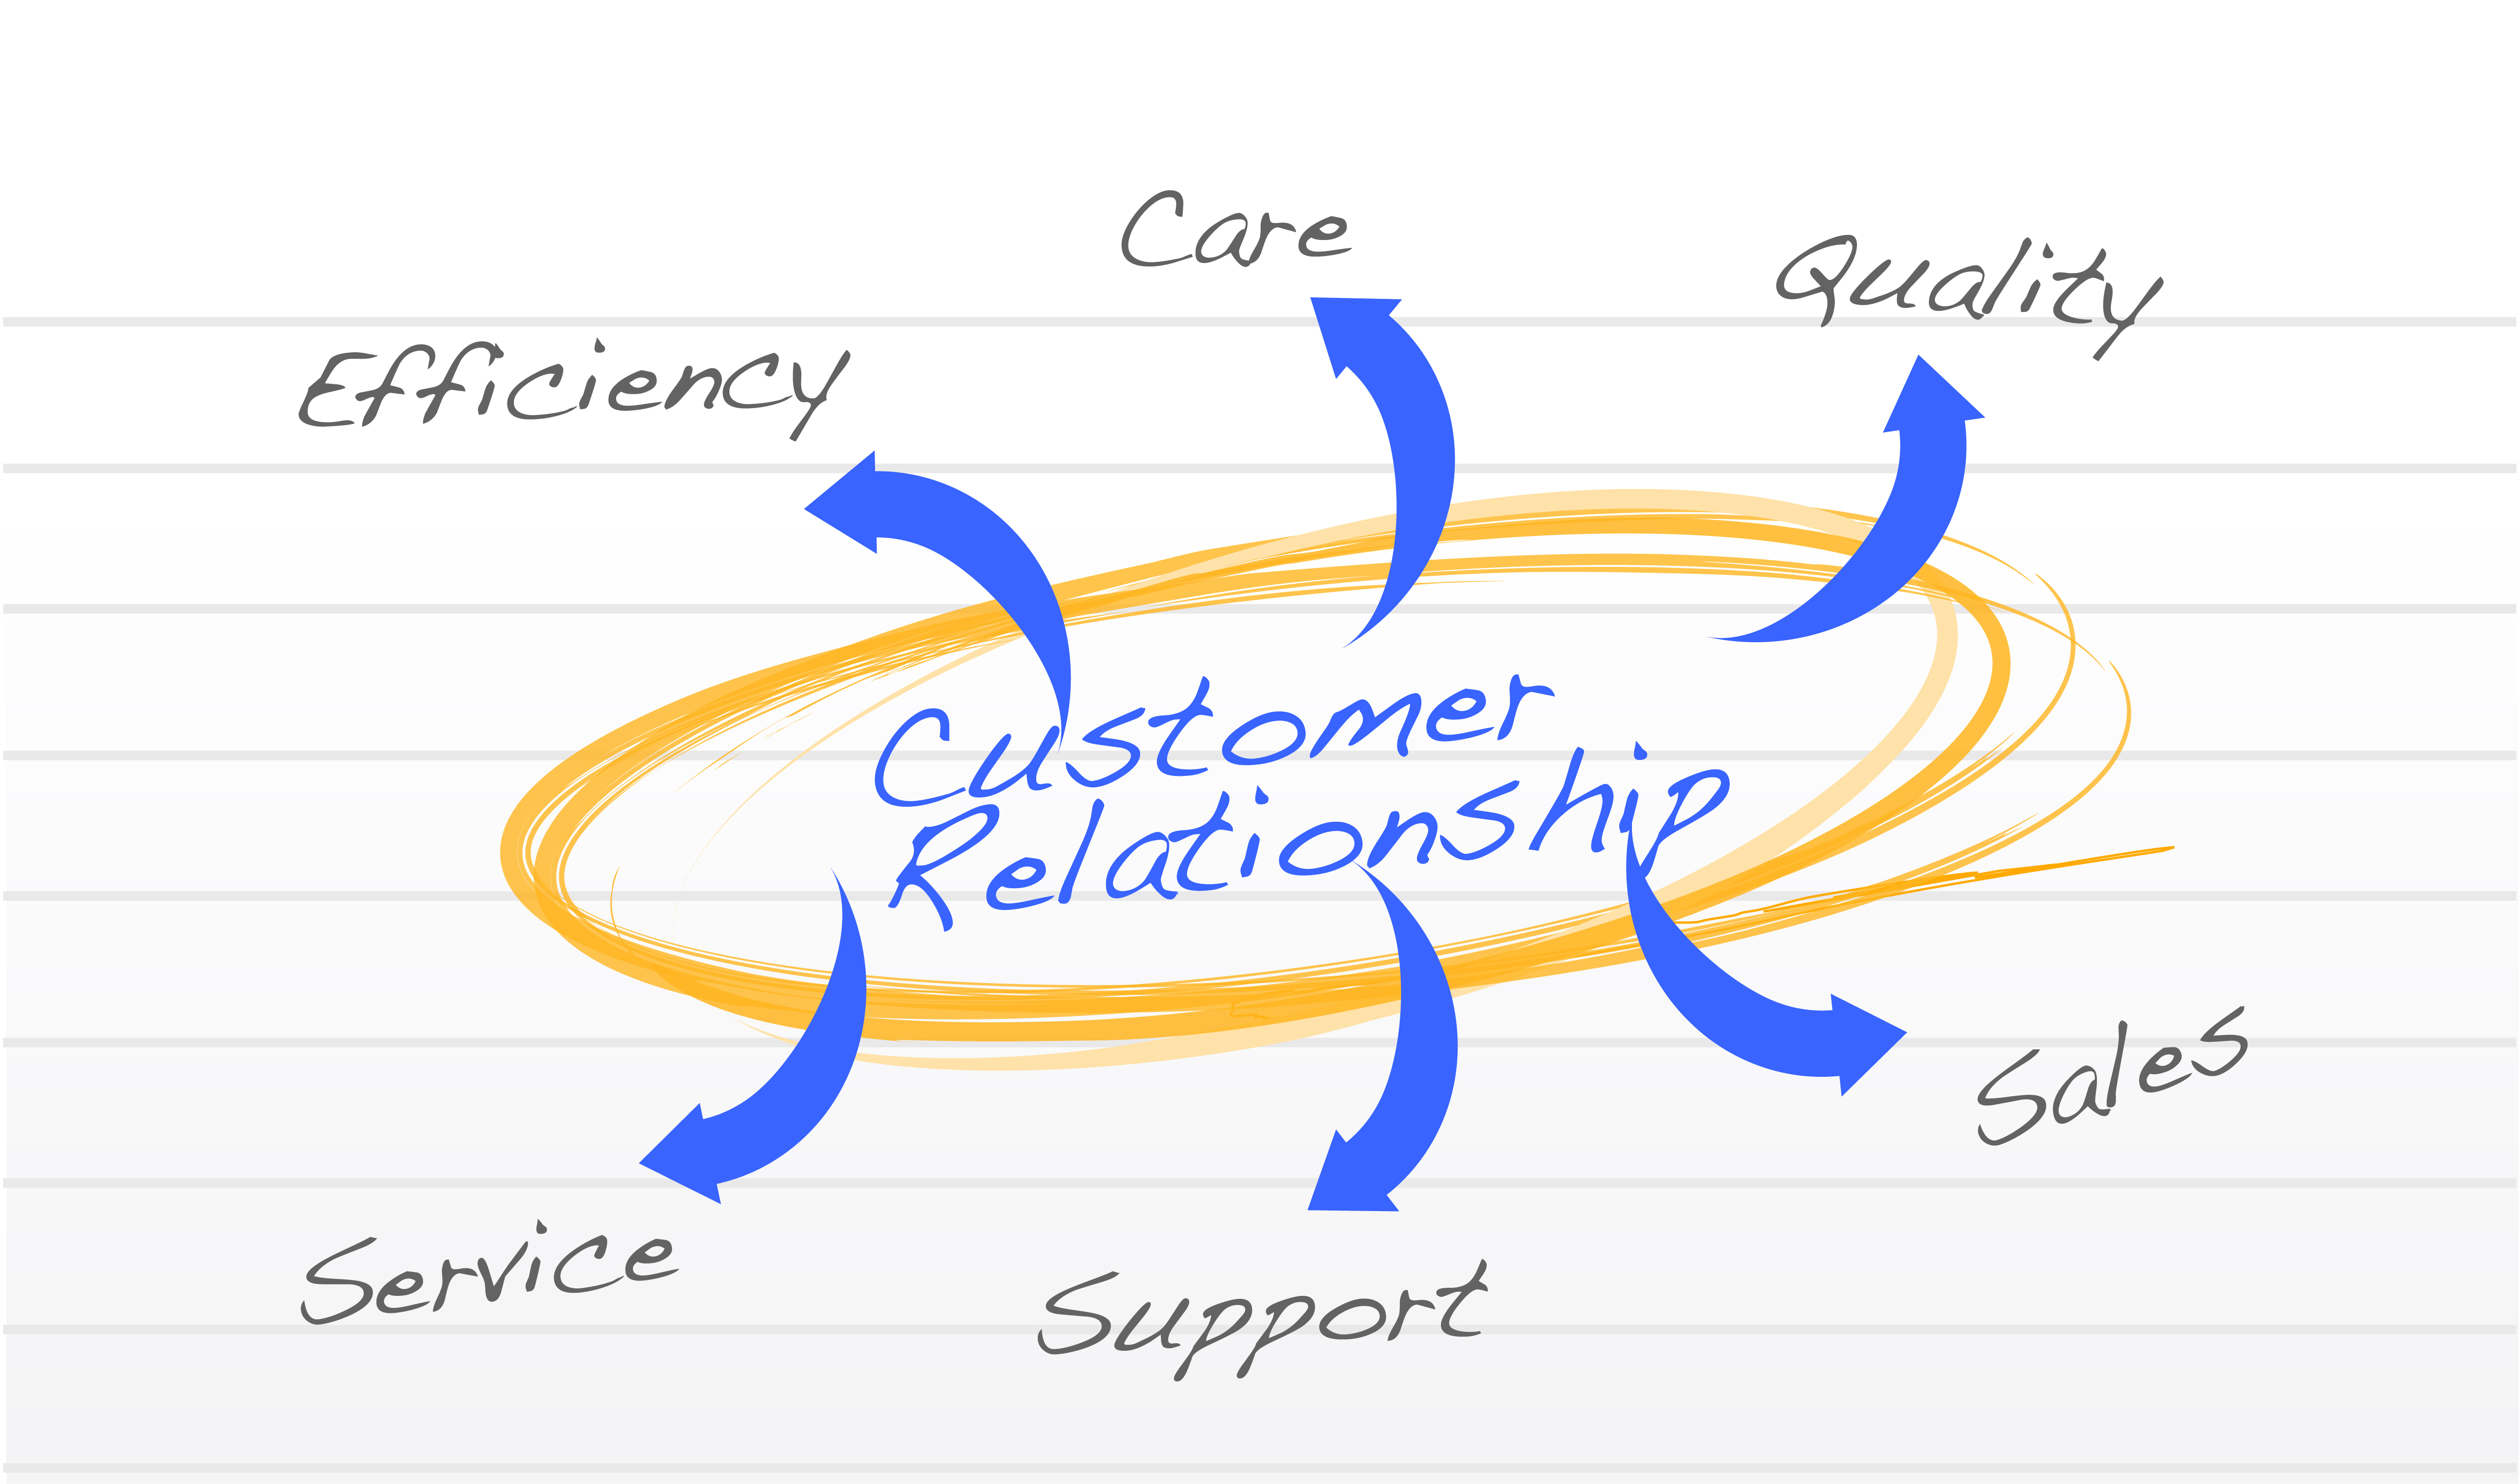 relationship with the customer